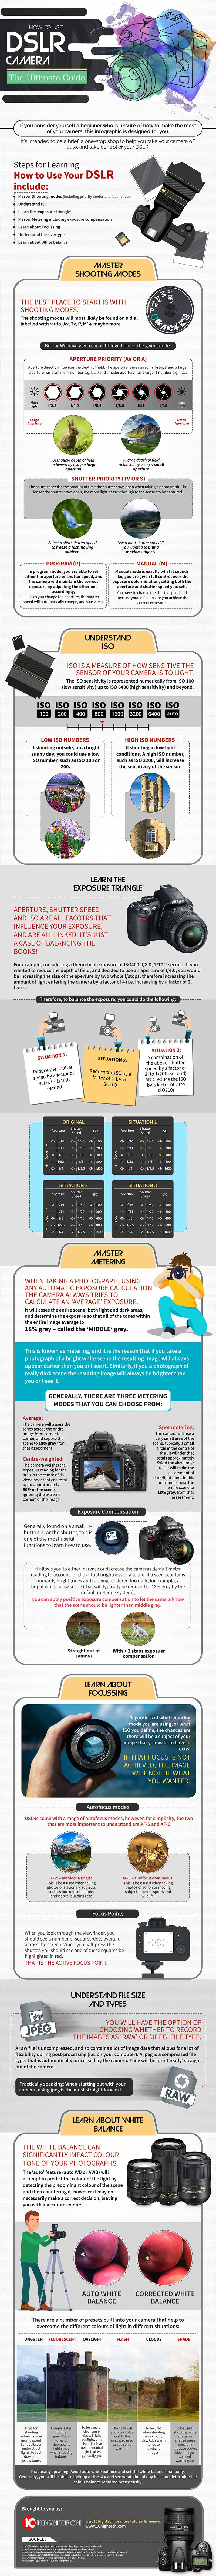 How to Use DSLR Camera cheat sheet infographic